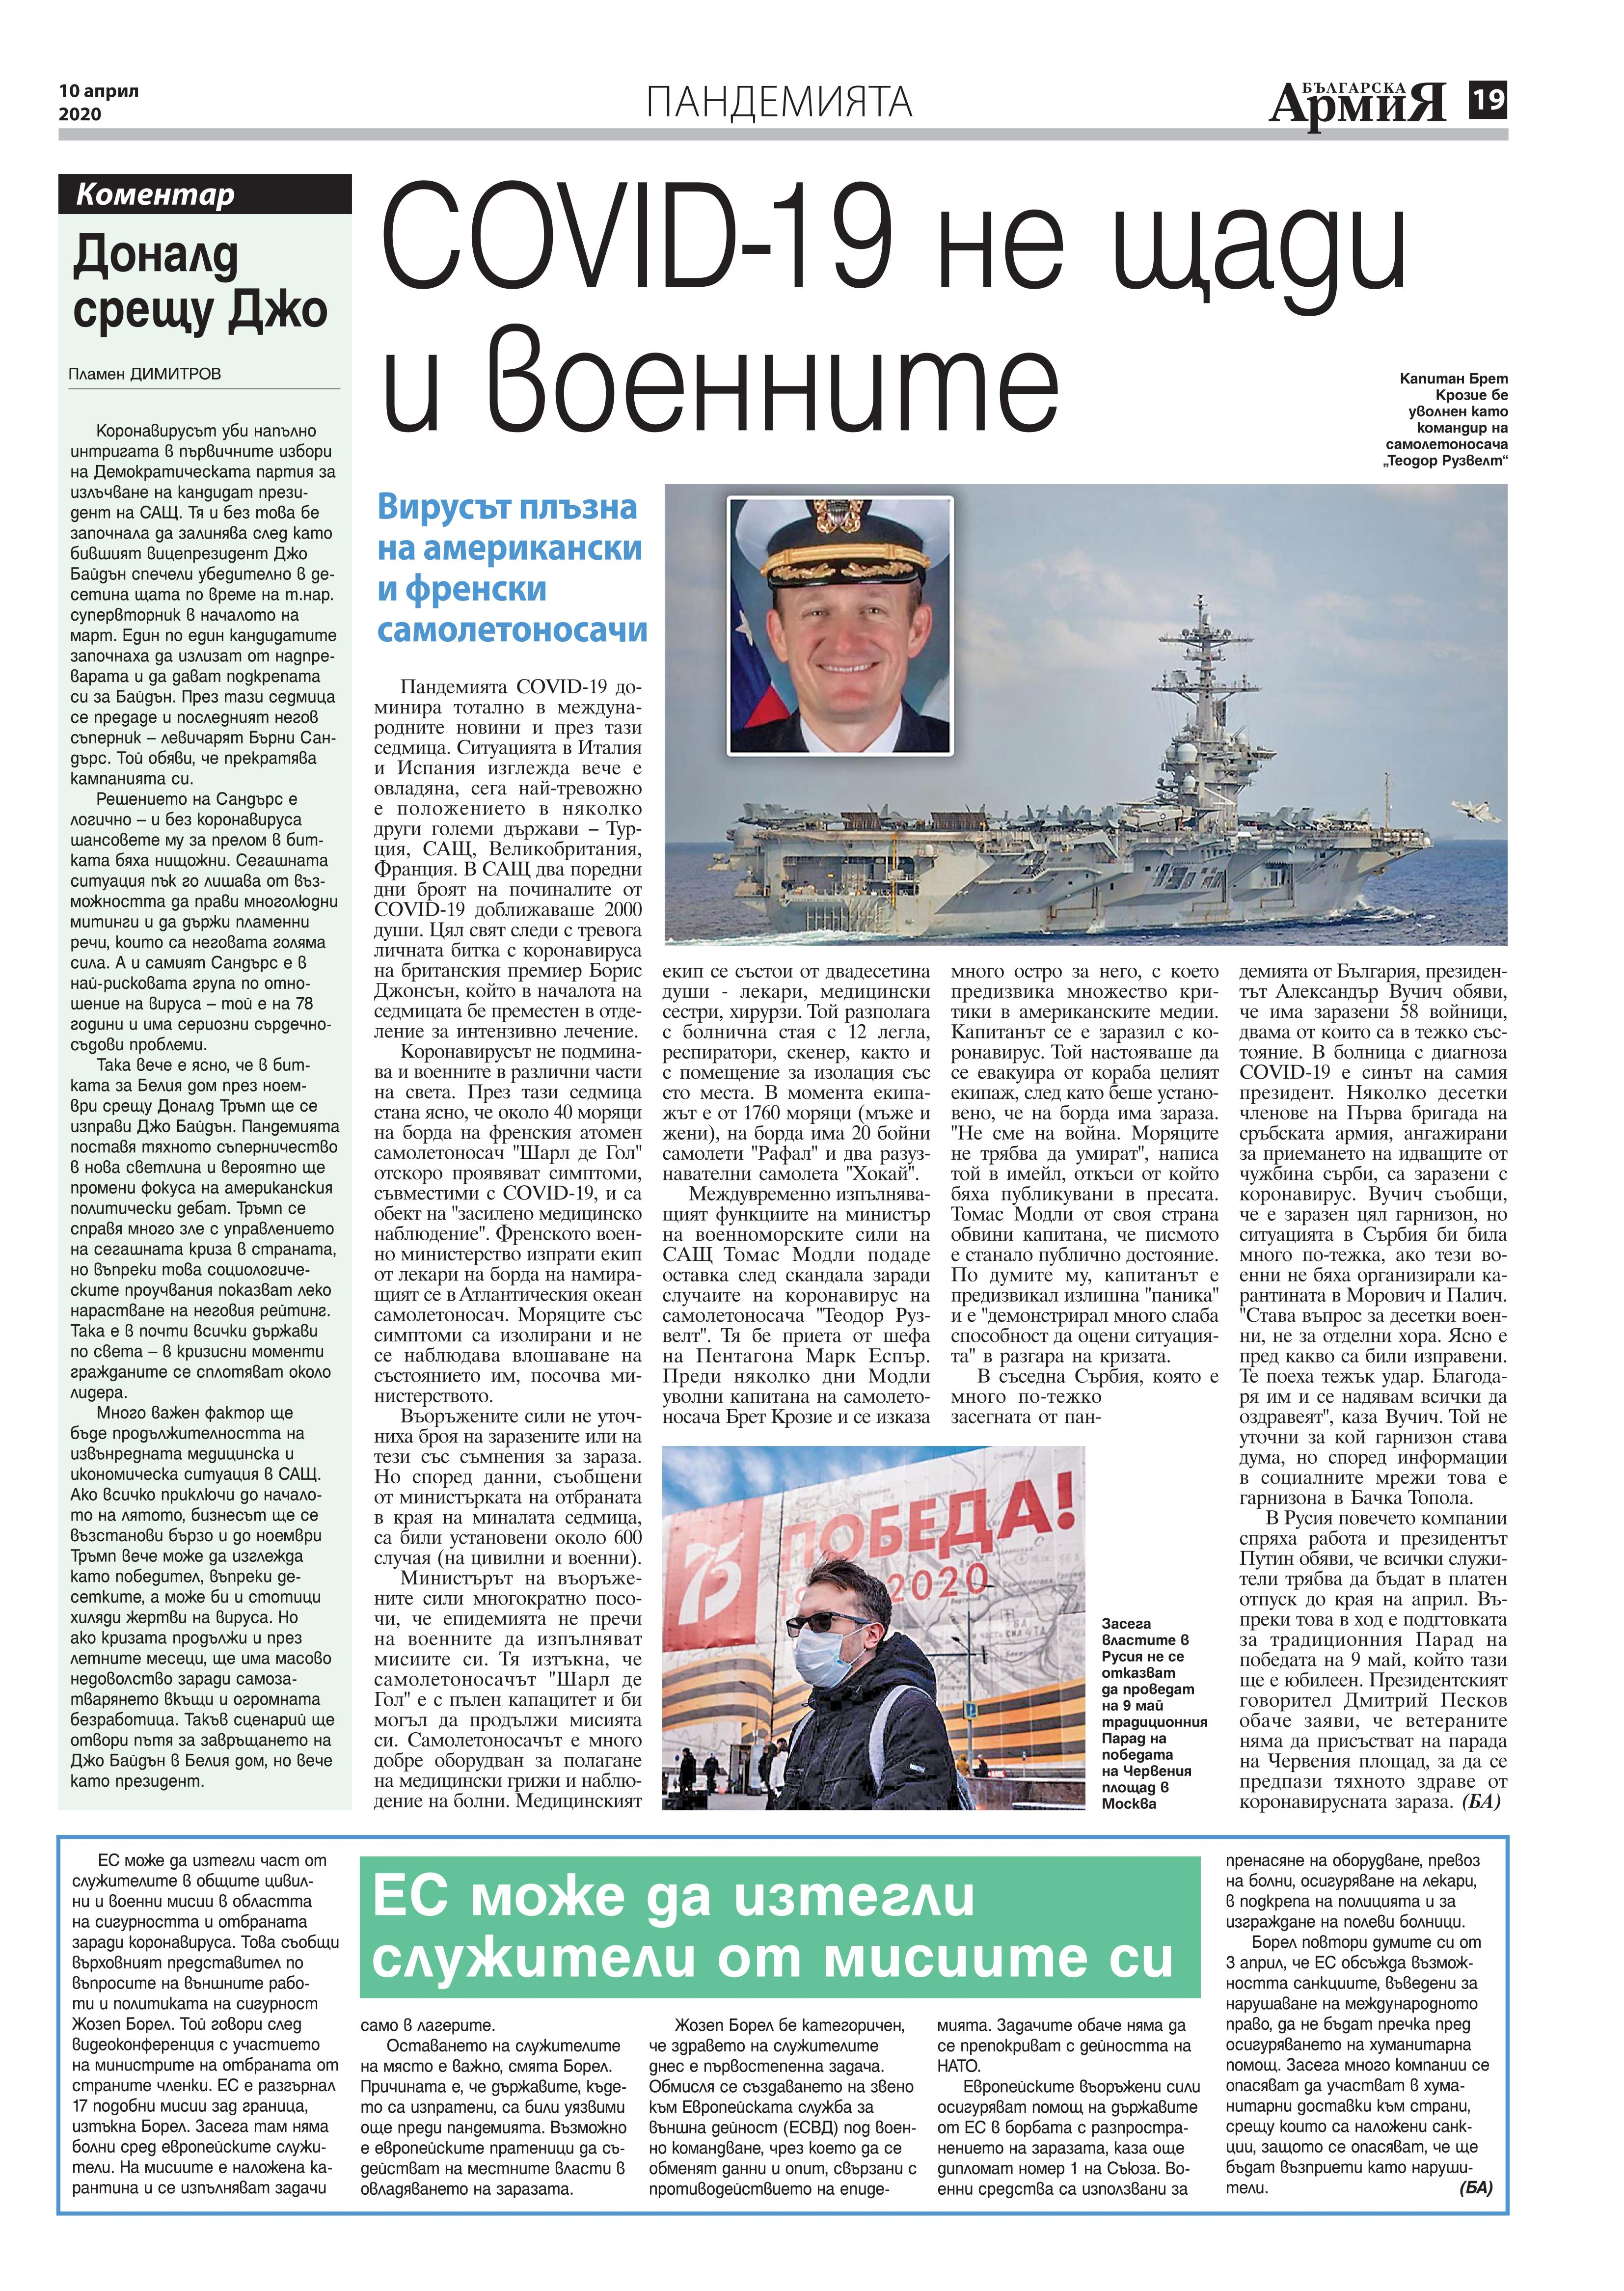 https://www.armymedia.bg/wp-content/uploads/2015/06/19.page1_-135.jpg